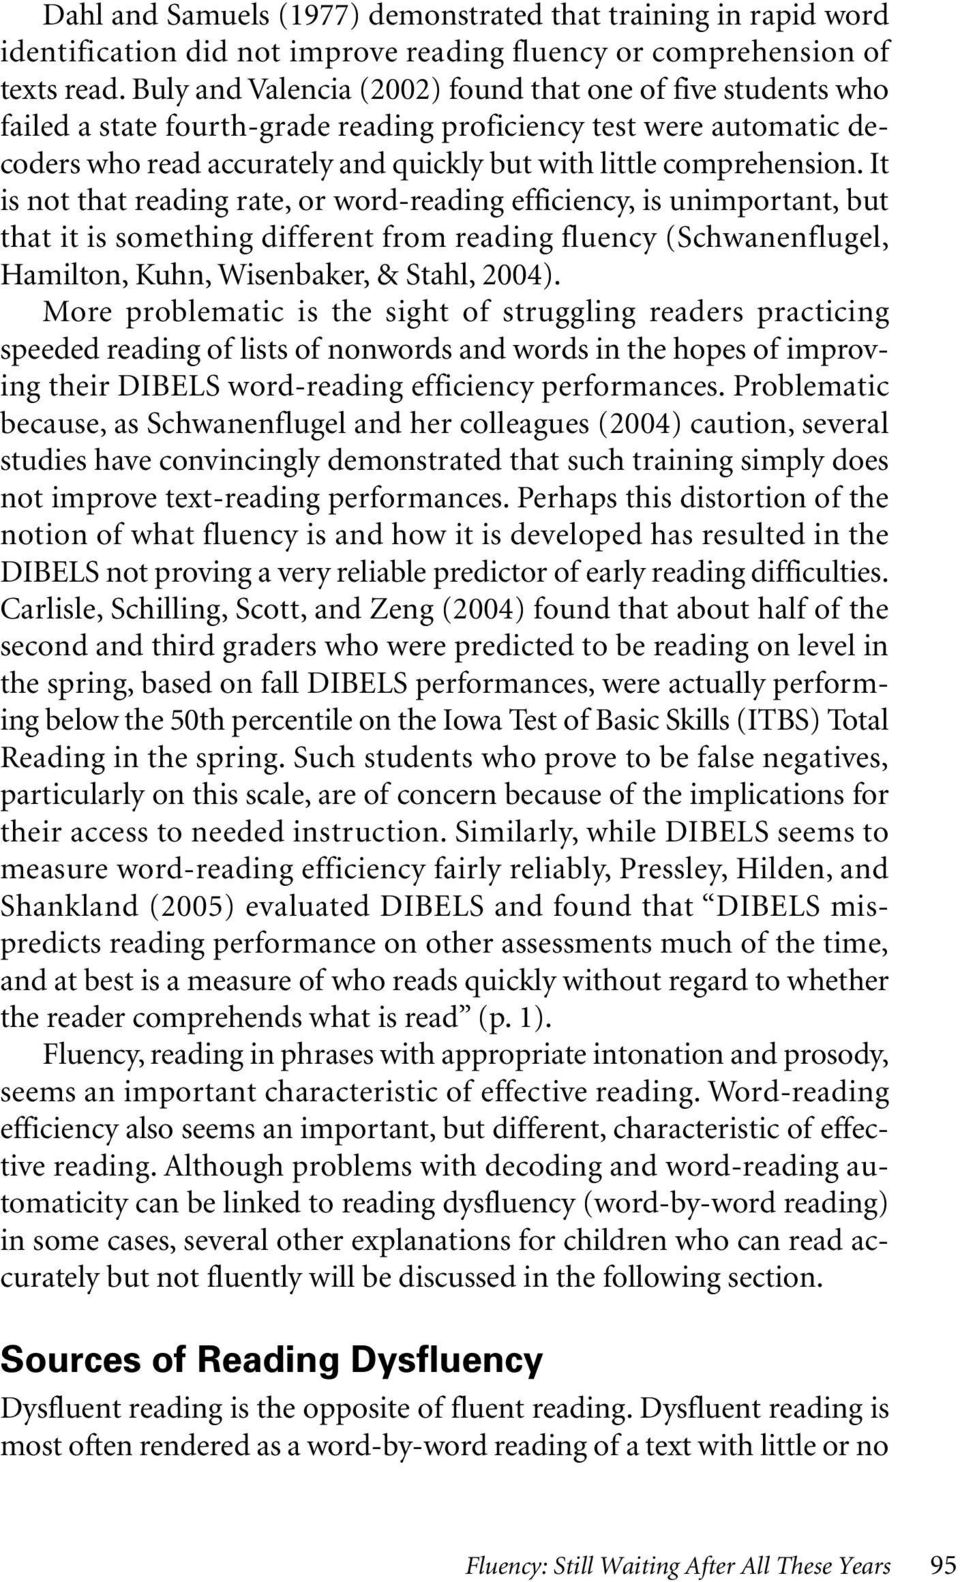 It is not that reading rate, or word-reading efficiency, is unimportant, but that it is something different from reading fluency (Schwanenflugel, Hamilton, Kuhn, Wisenbaker, & Stahl, 2004).